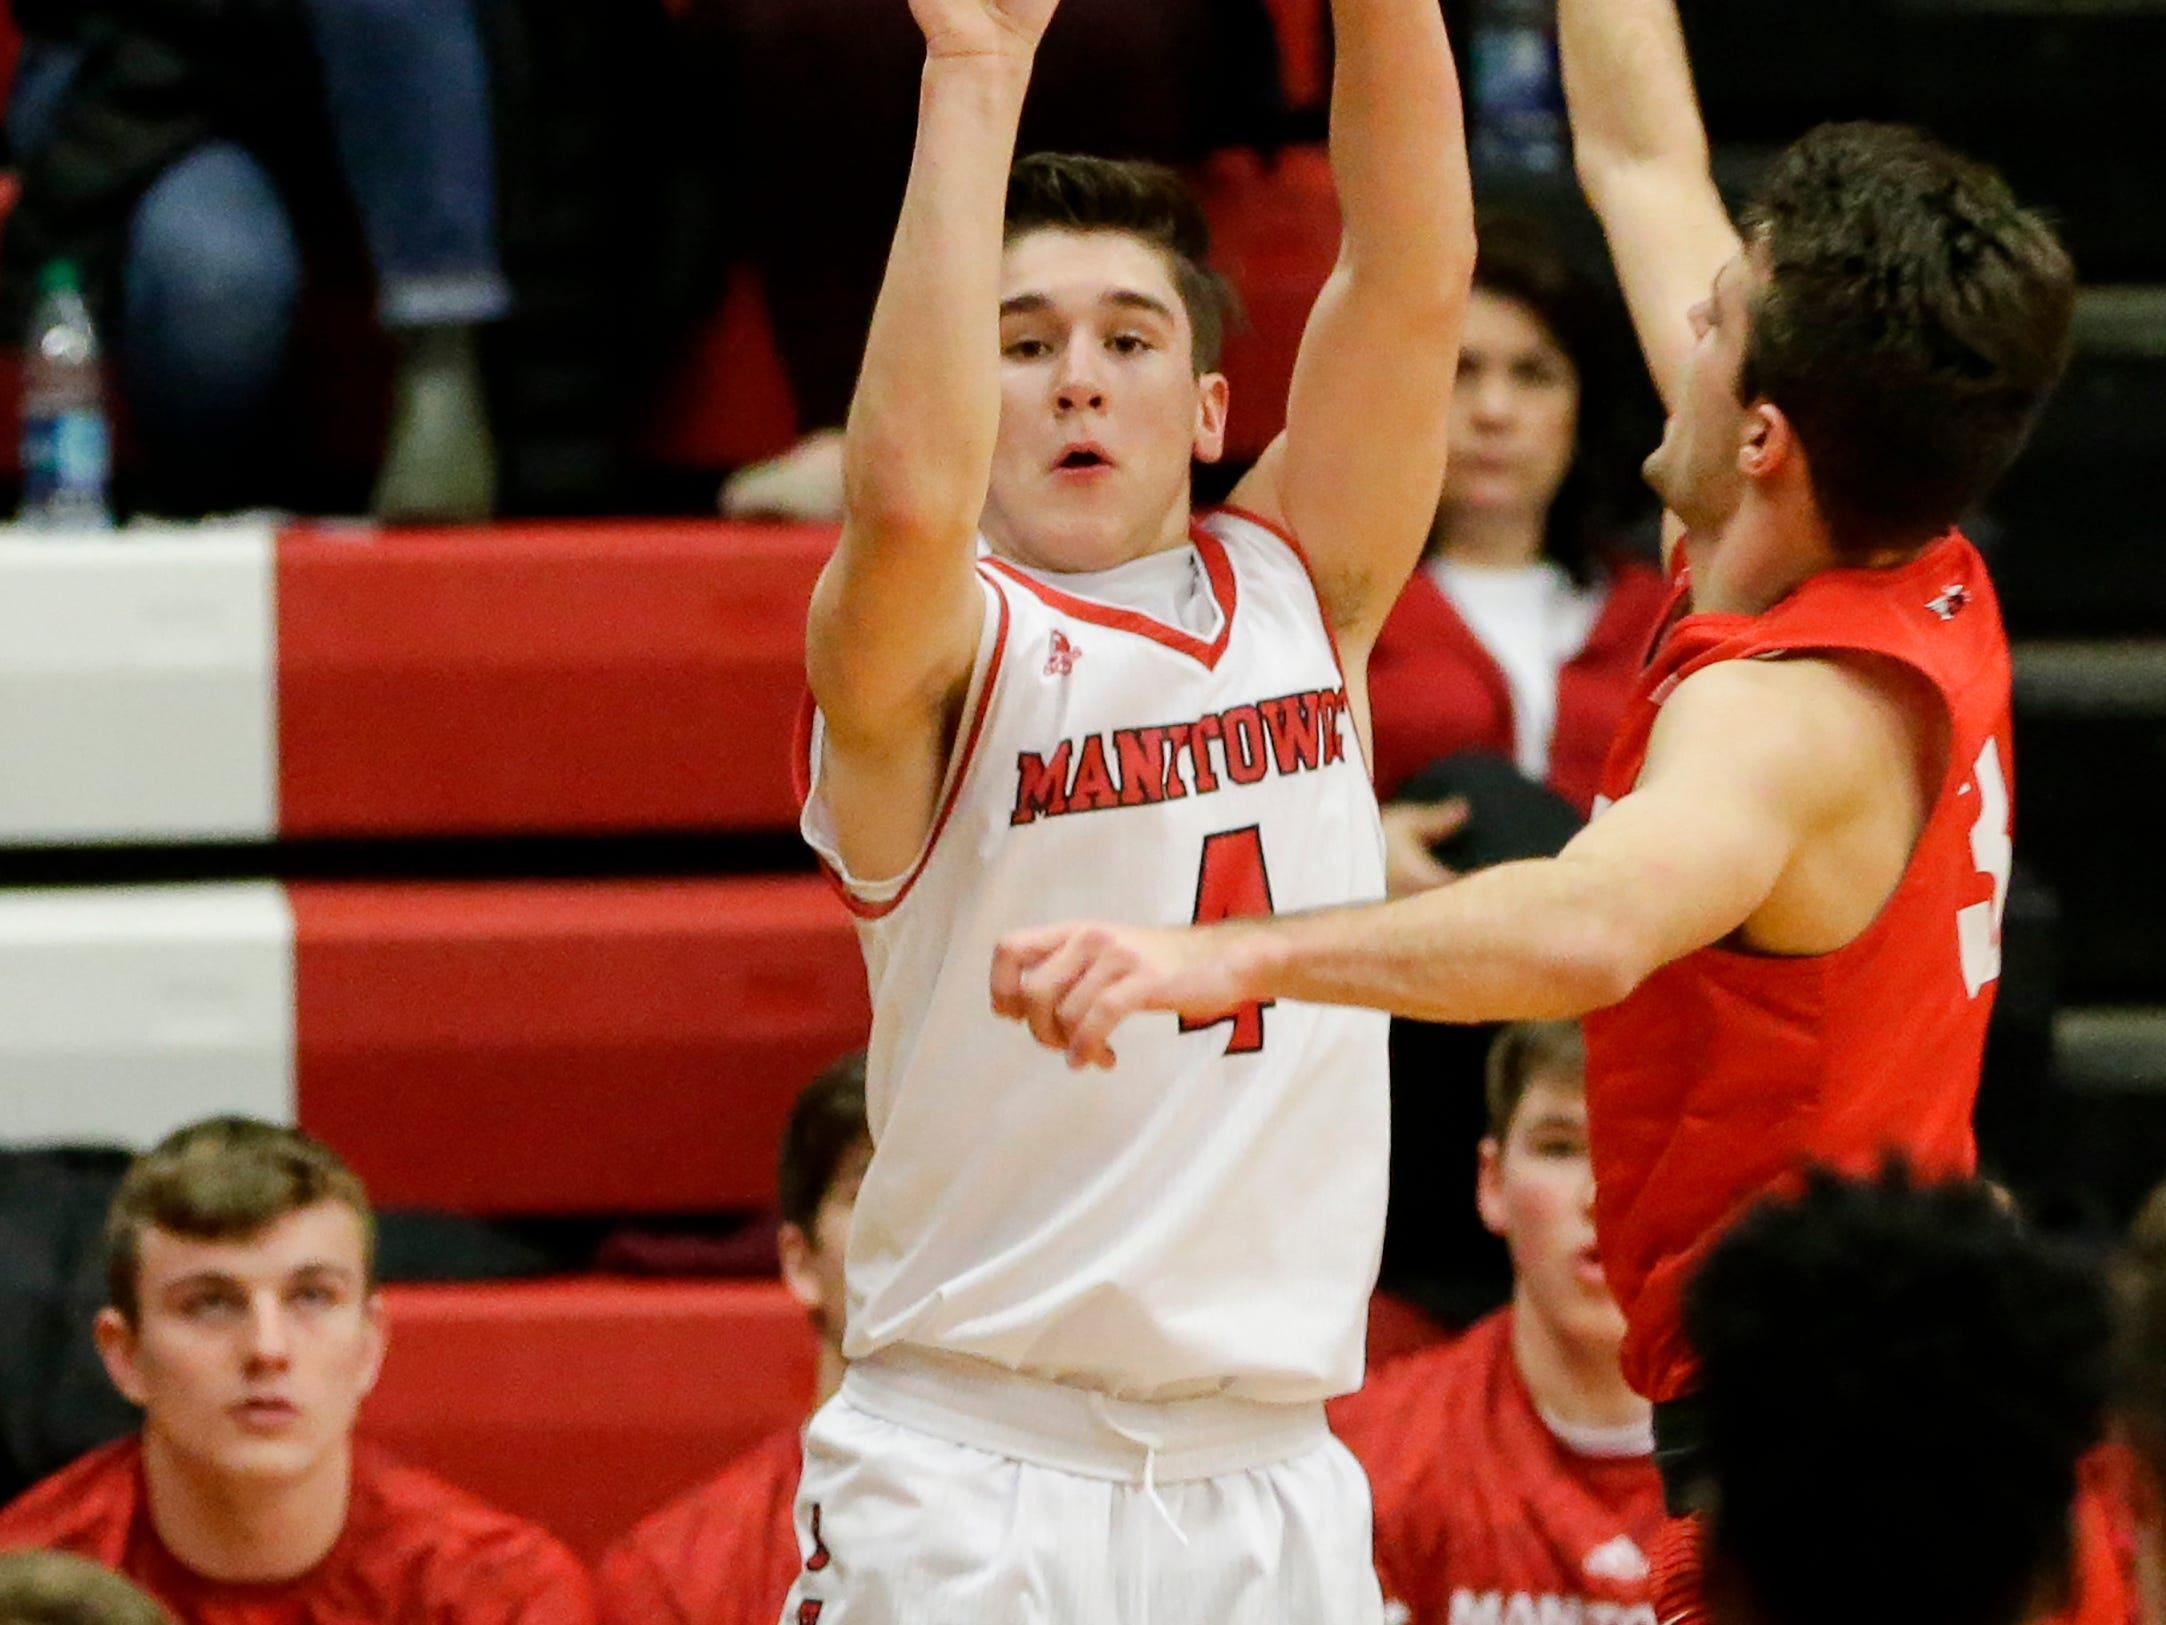 Manitowoc Lincoln's Mason Dopirak (4) puts up a three against Sheboygan South at Manitowoc Lincoln High School Tuesday, February 5, 2019, in Manitowoc, Wis. Joshua Clark/USA TODAY NETWORK-Wisconsin